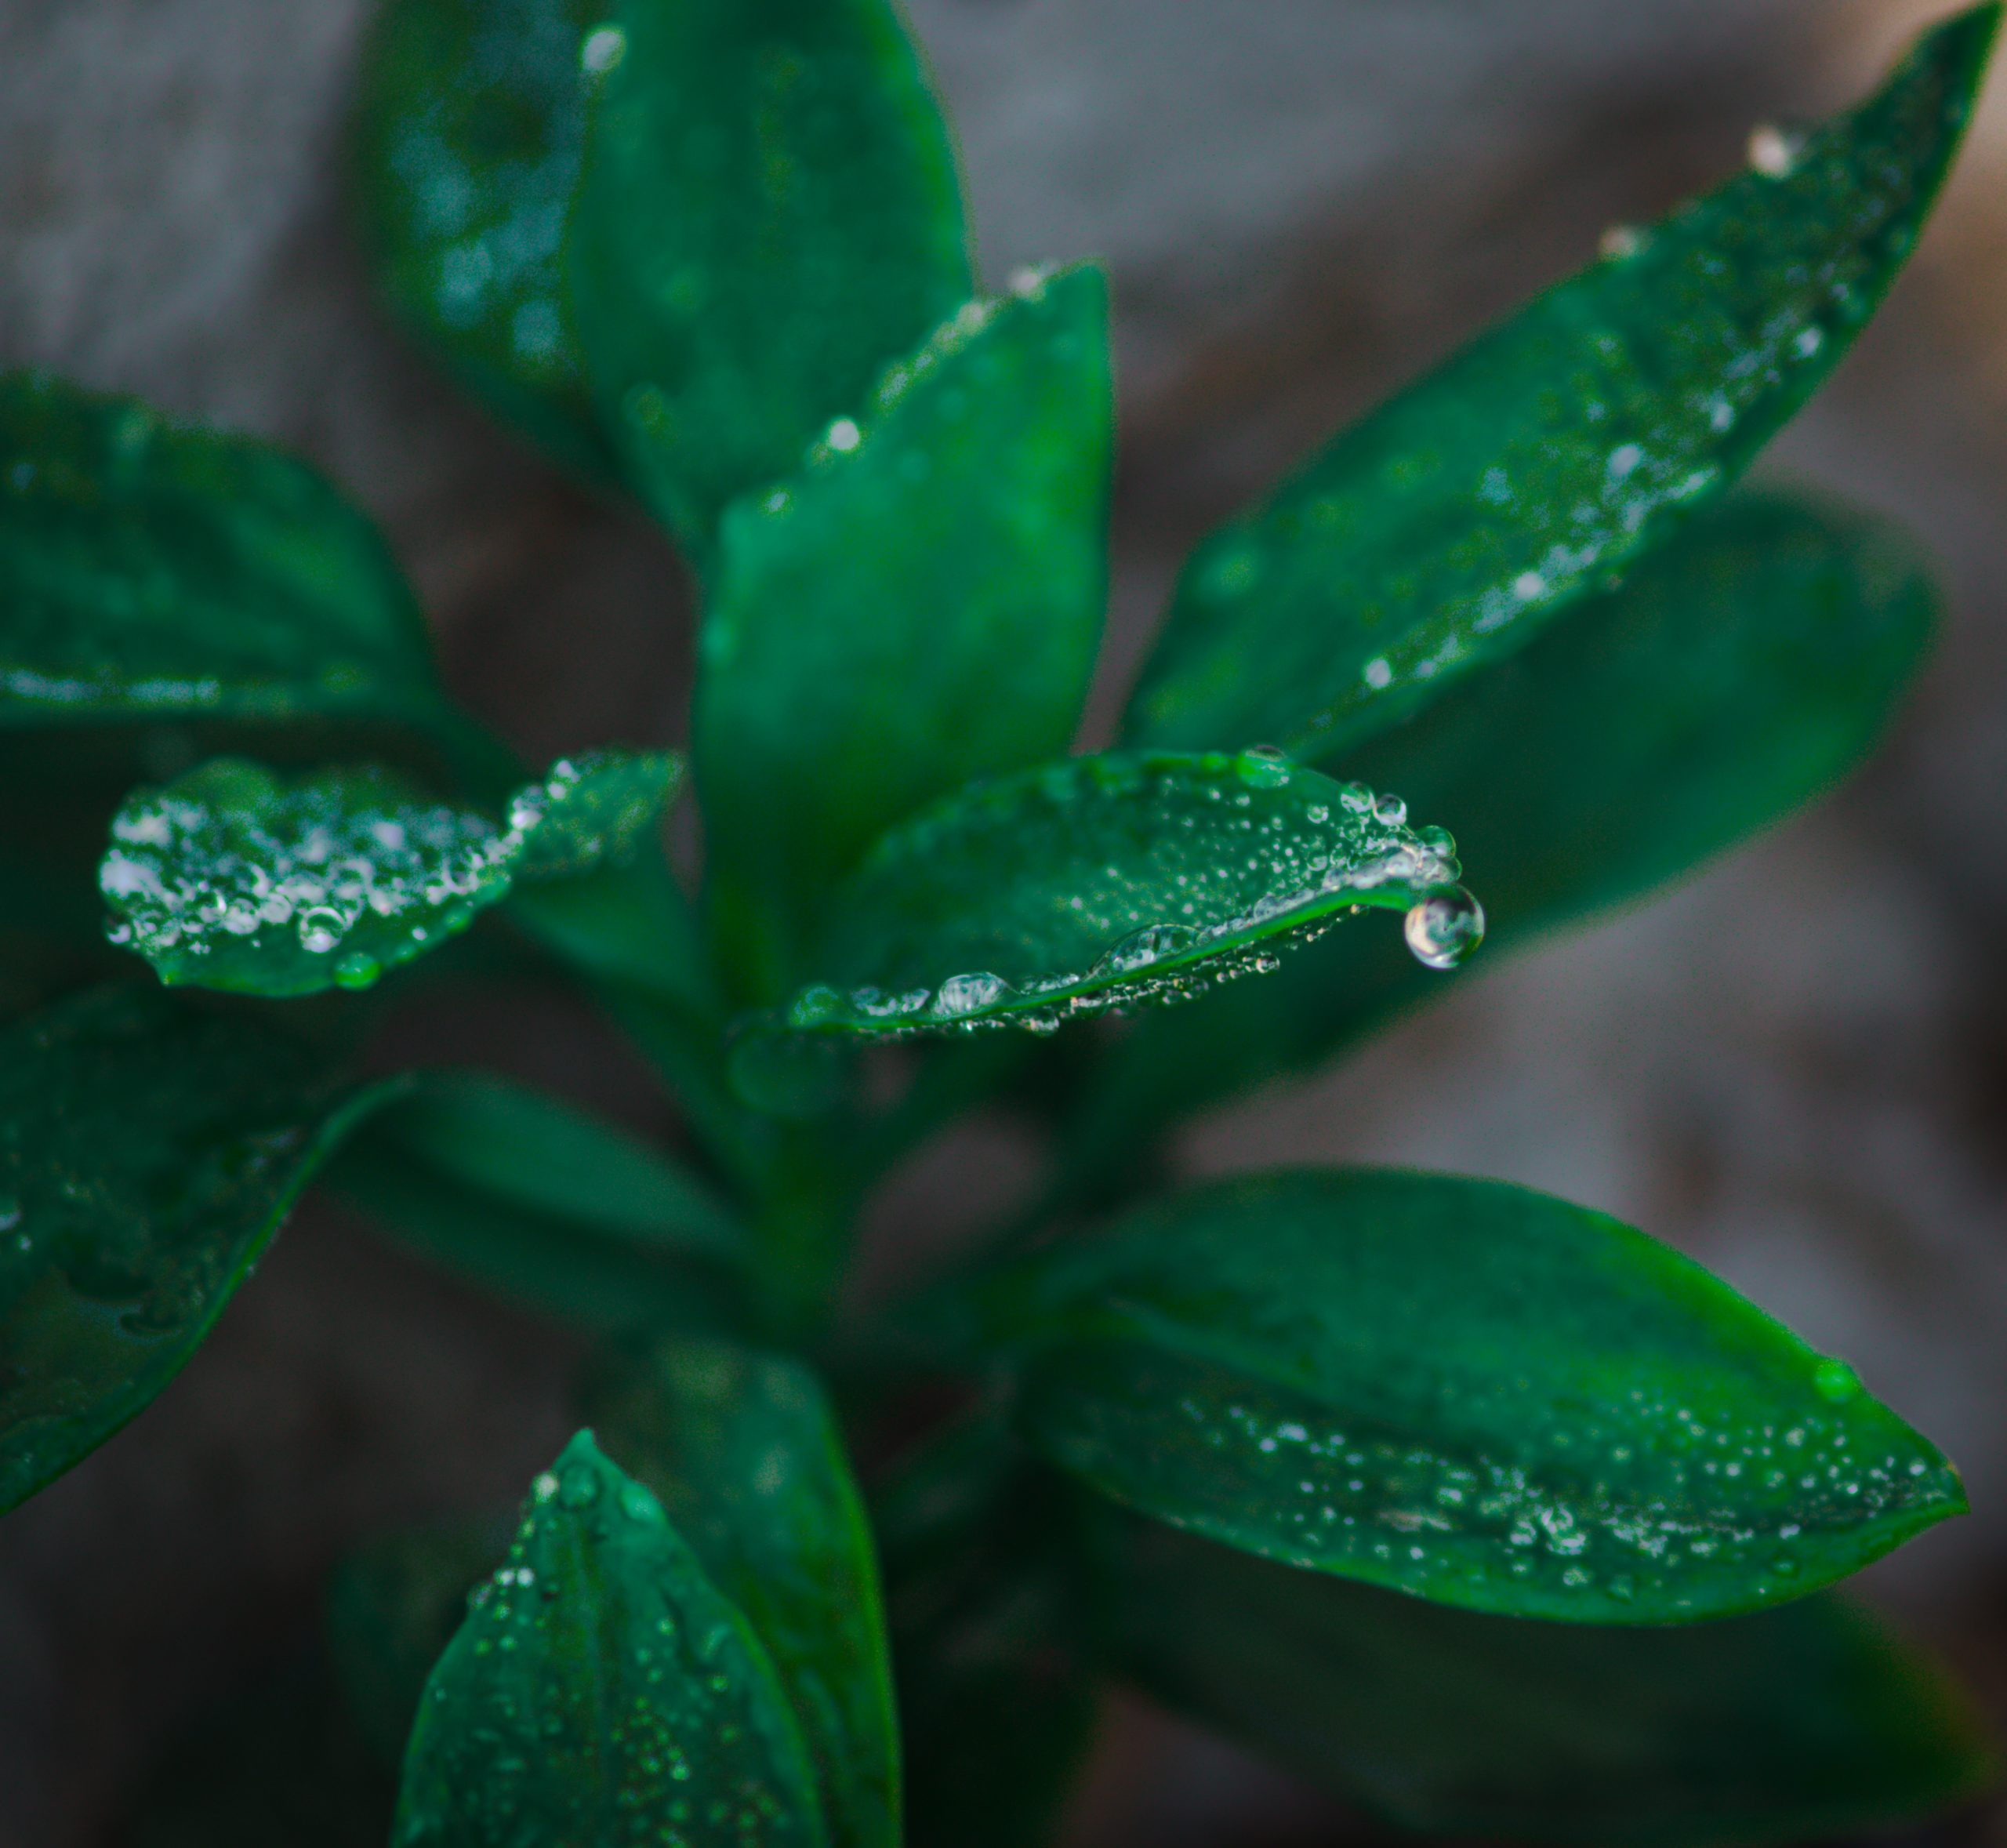 Dewdrops on a plant leaves